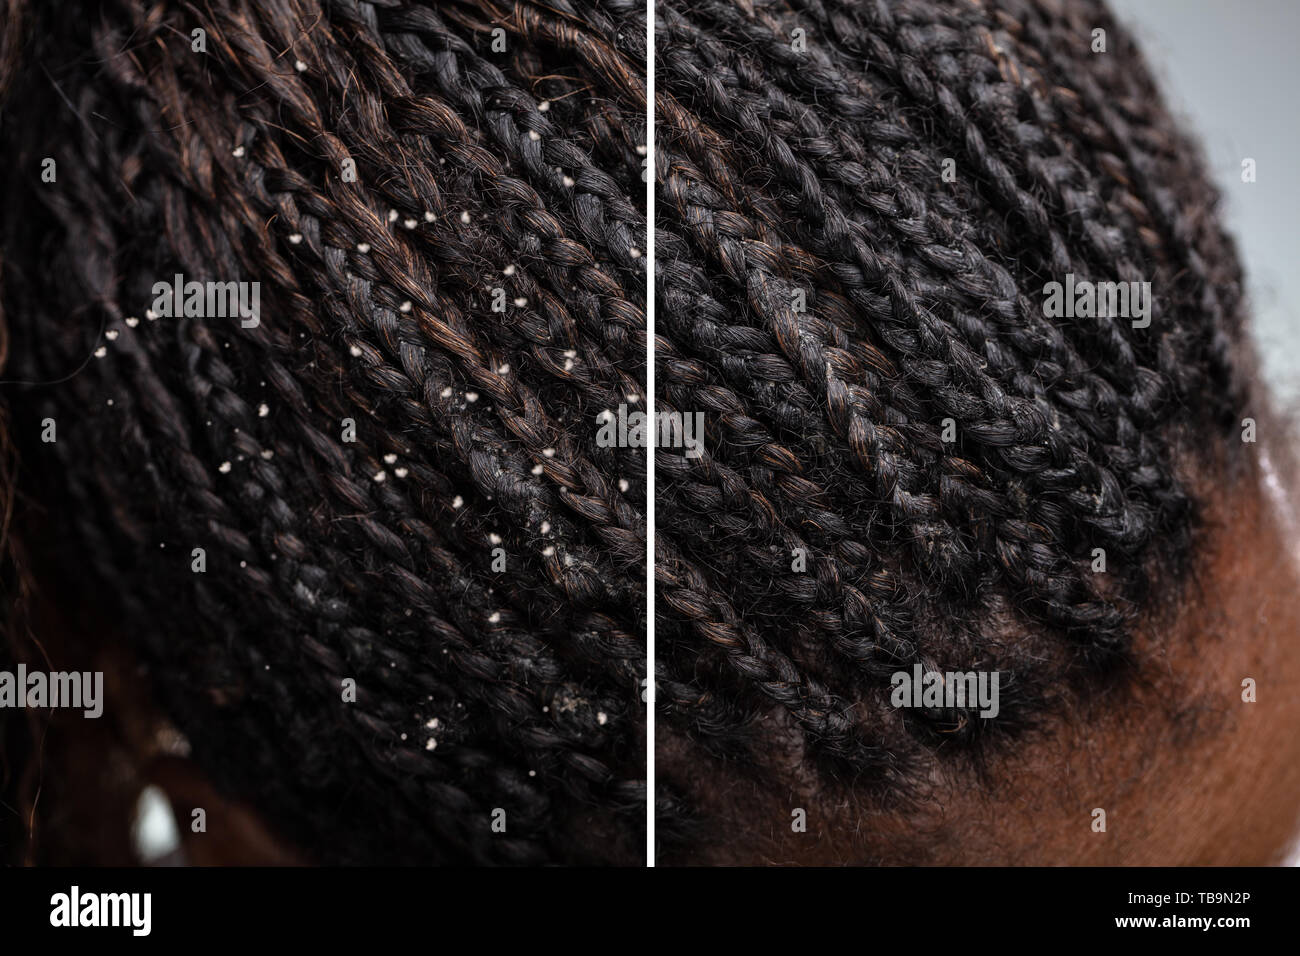 Difference Of Hair With Dandruff And Clean Hair Stock Photo